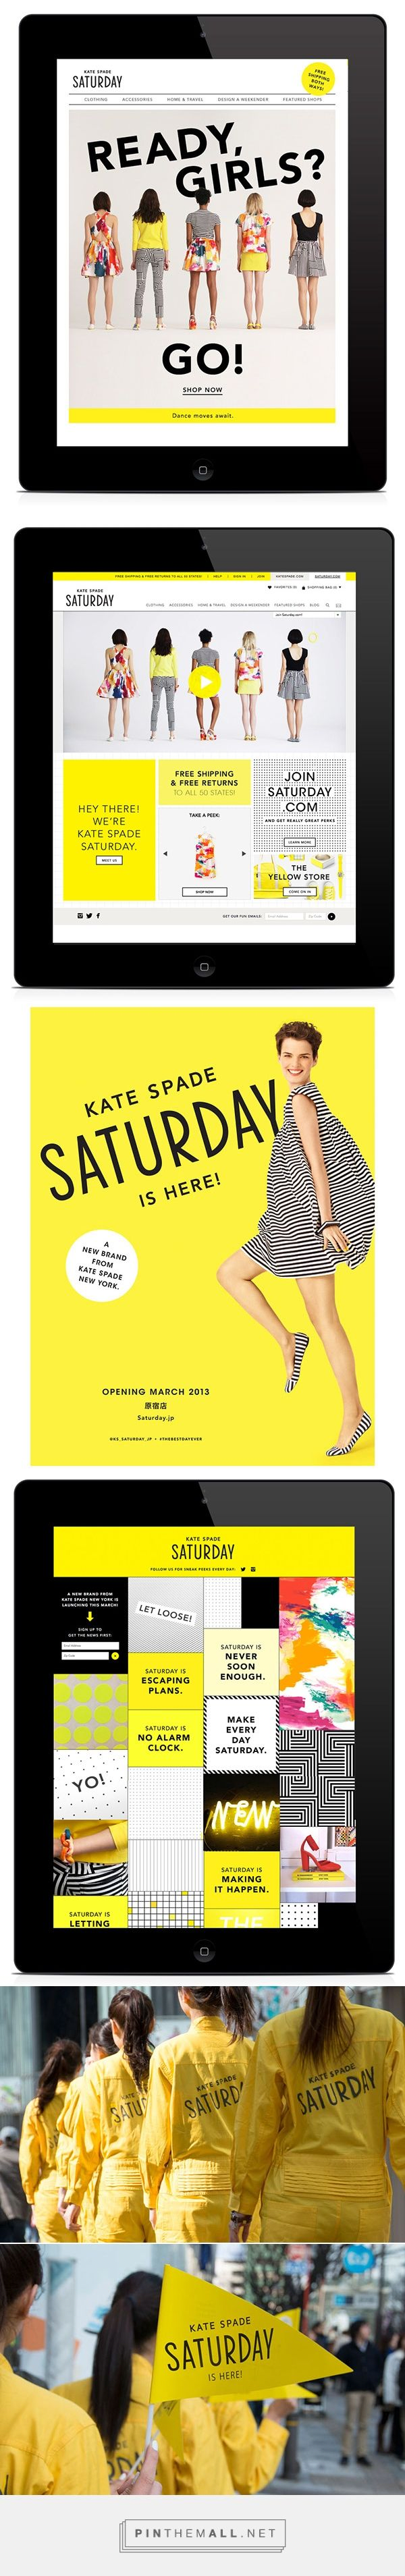 Kate Spade Saturday Launch on Behance